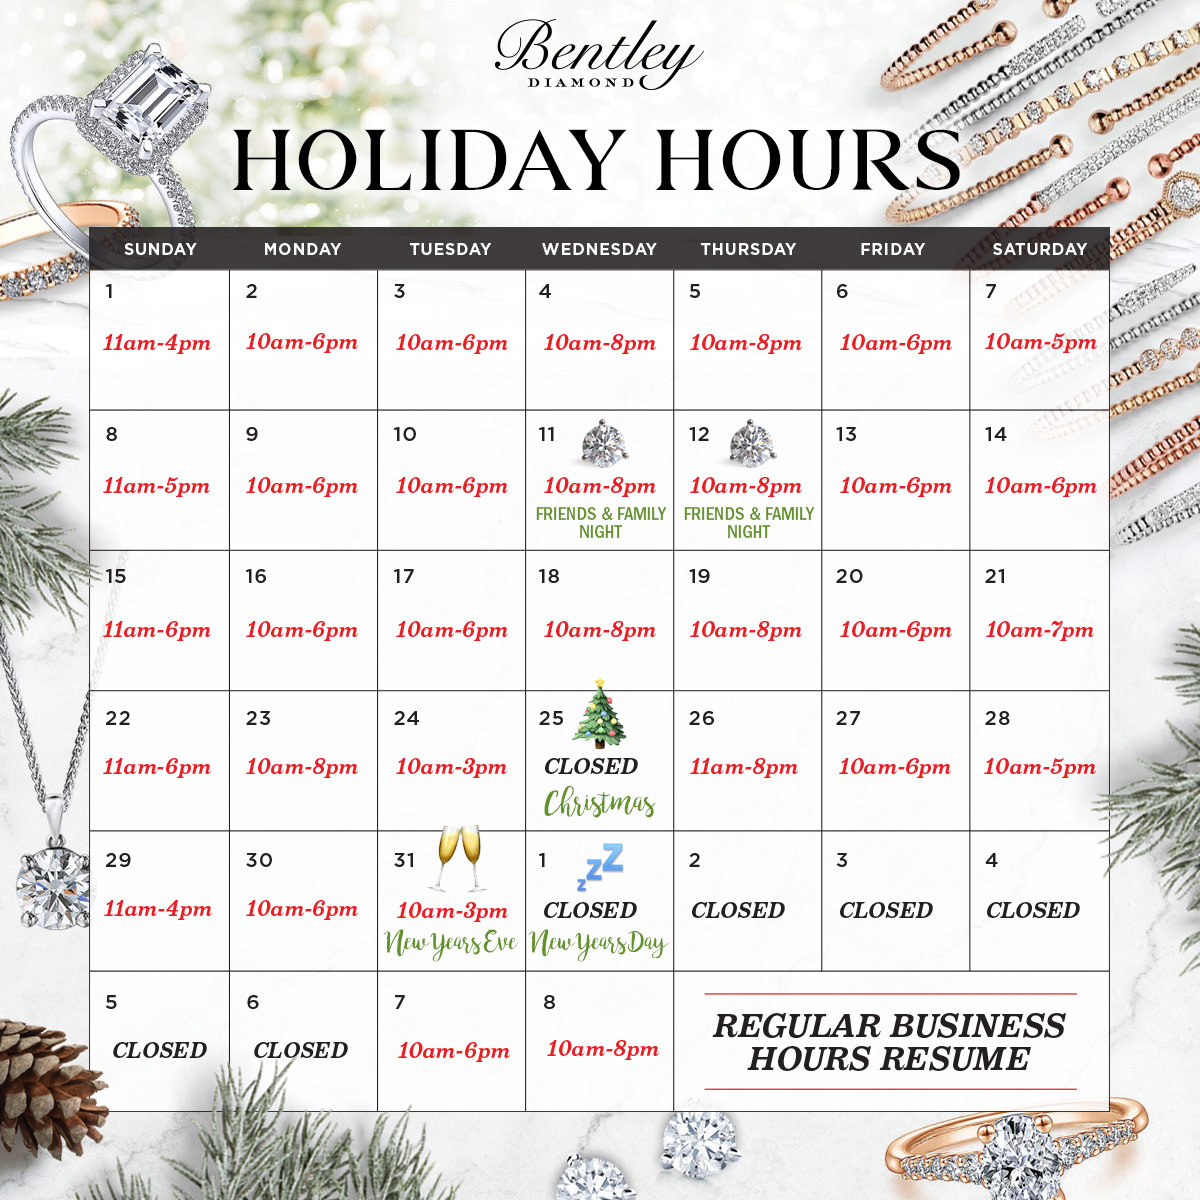 Bentley Diamond - Holiday Hours 2017